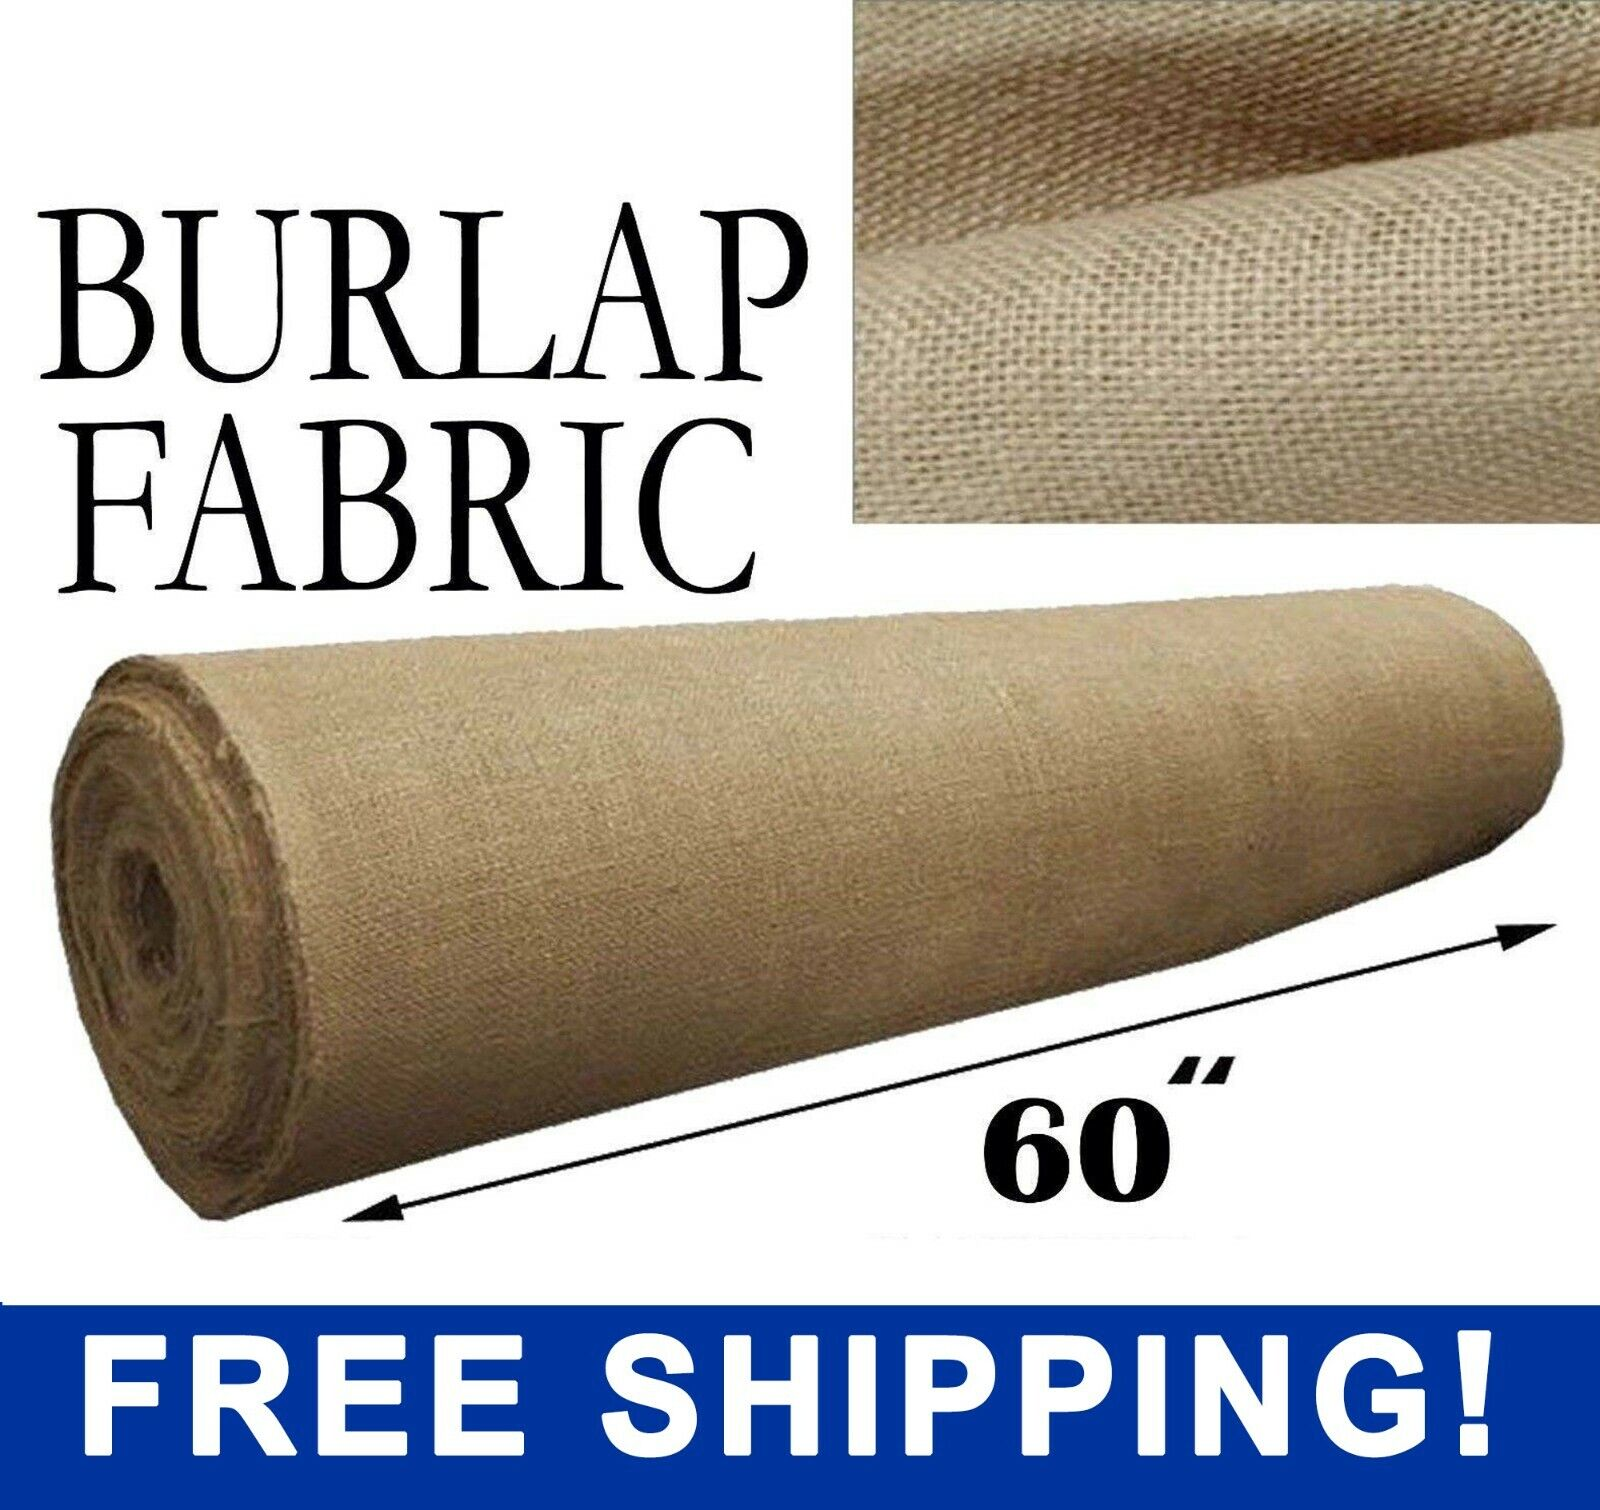 "Burlap Fabric Natural - 60"" Wide - Sold By The Yard - Free S"